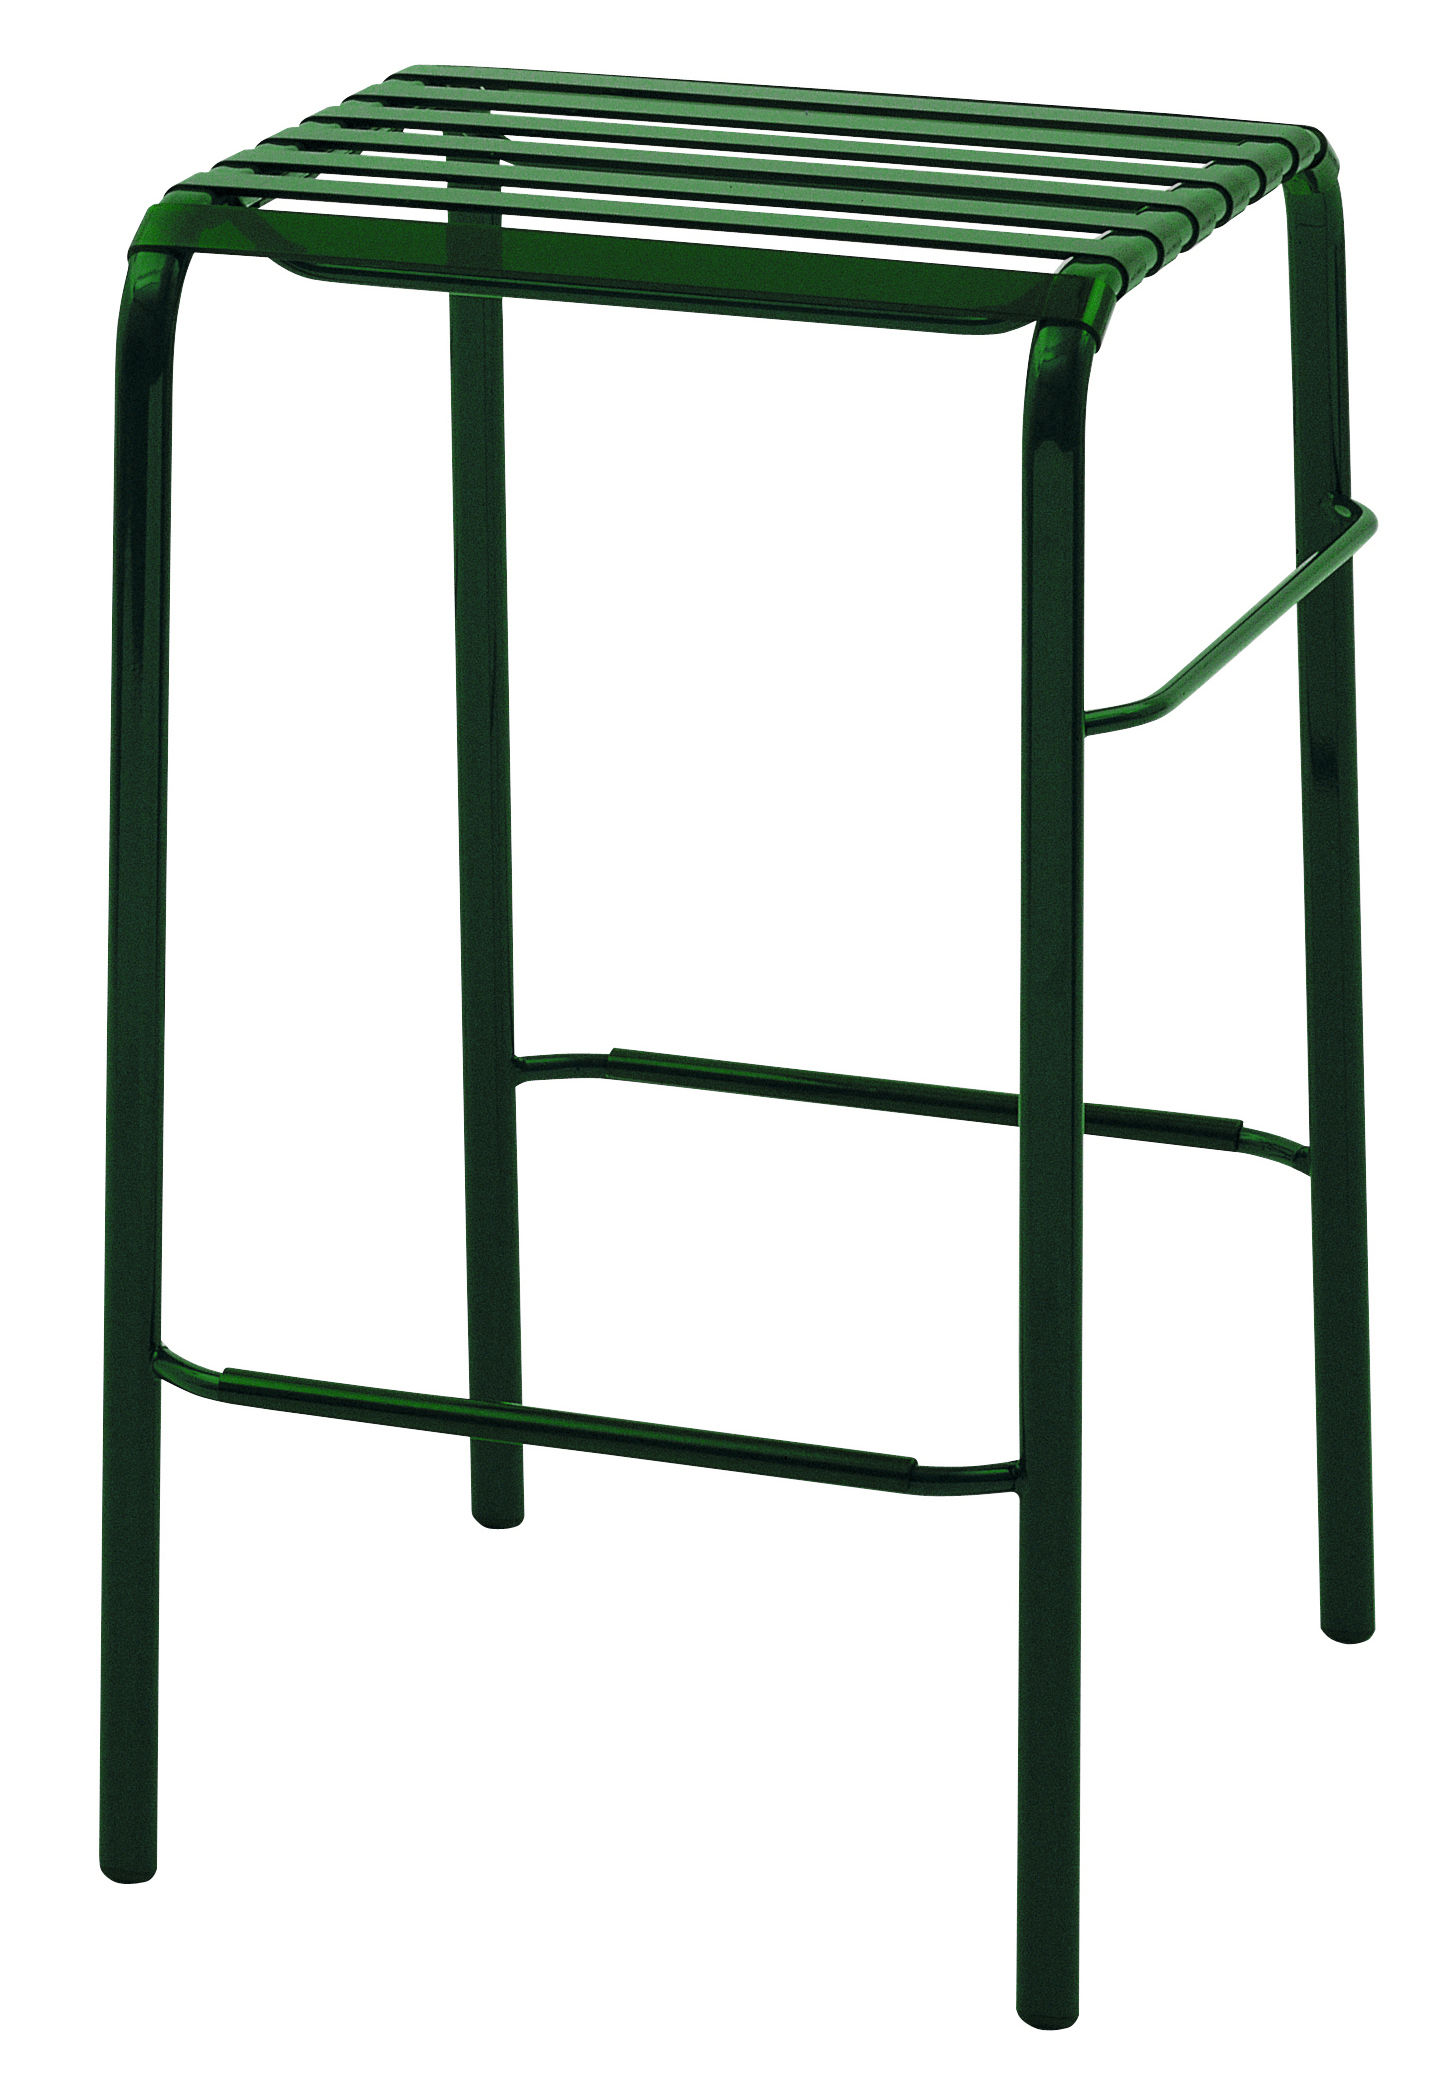 tabouret de bar striped h 68 cm assise plastique vert h 68 cm magis. Black Bedroom Furniture Sets. Home Design Ideas